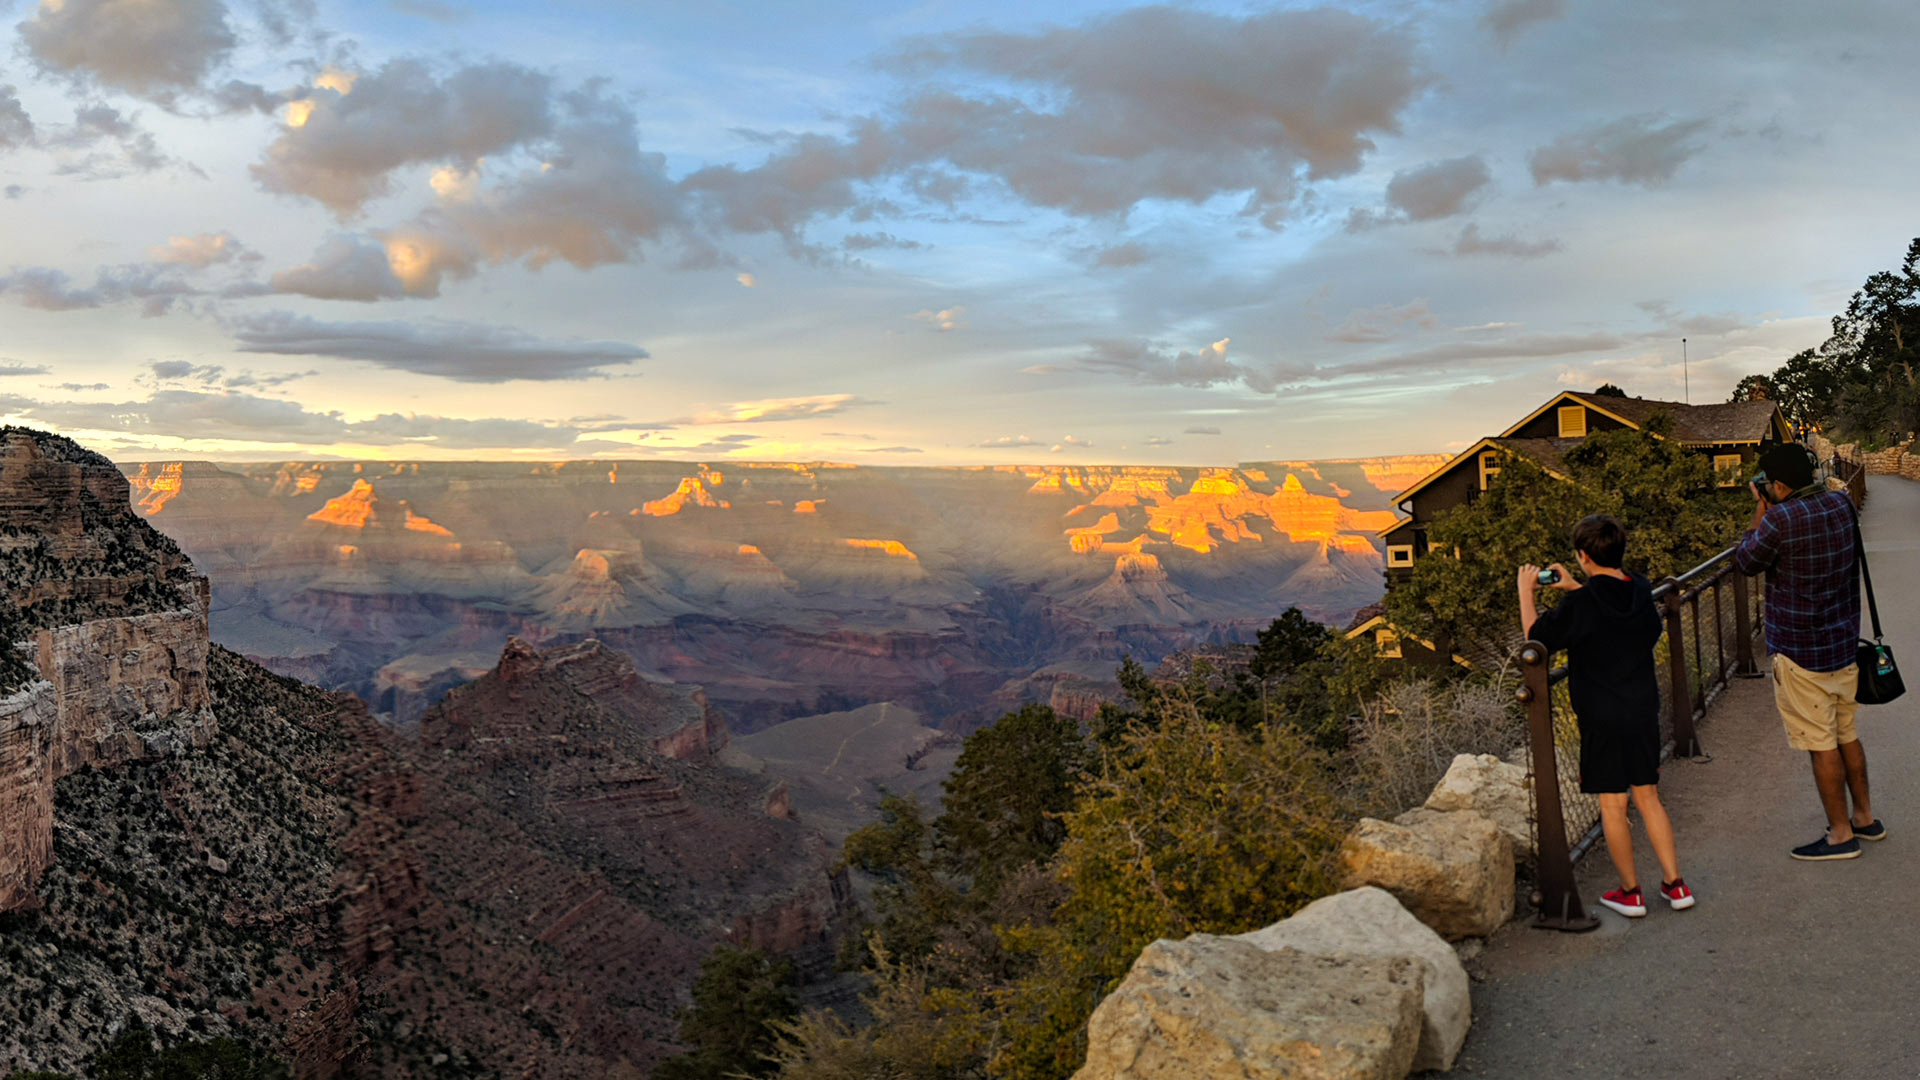 Visitors to the Grand Canyon's South Rim snap photos as the sun goes down, September 2018.